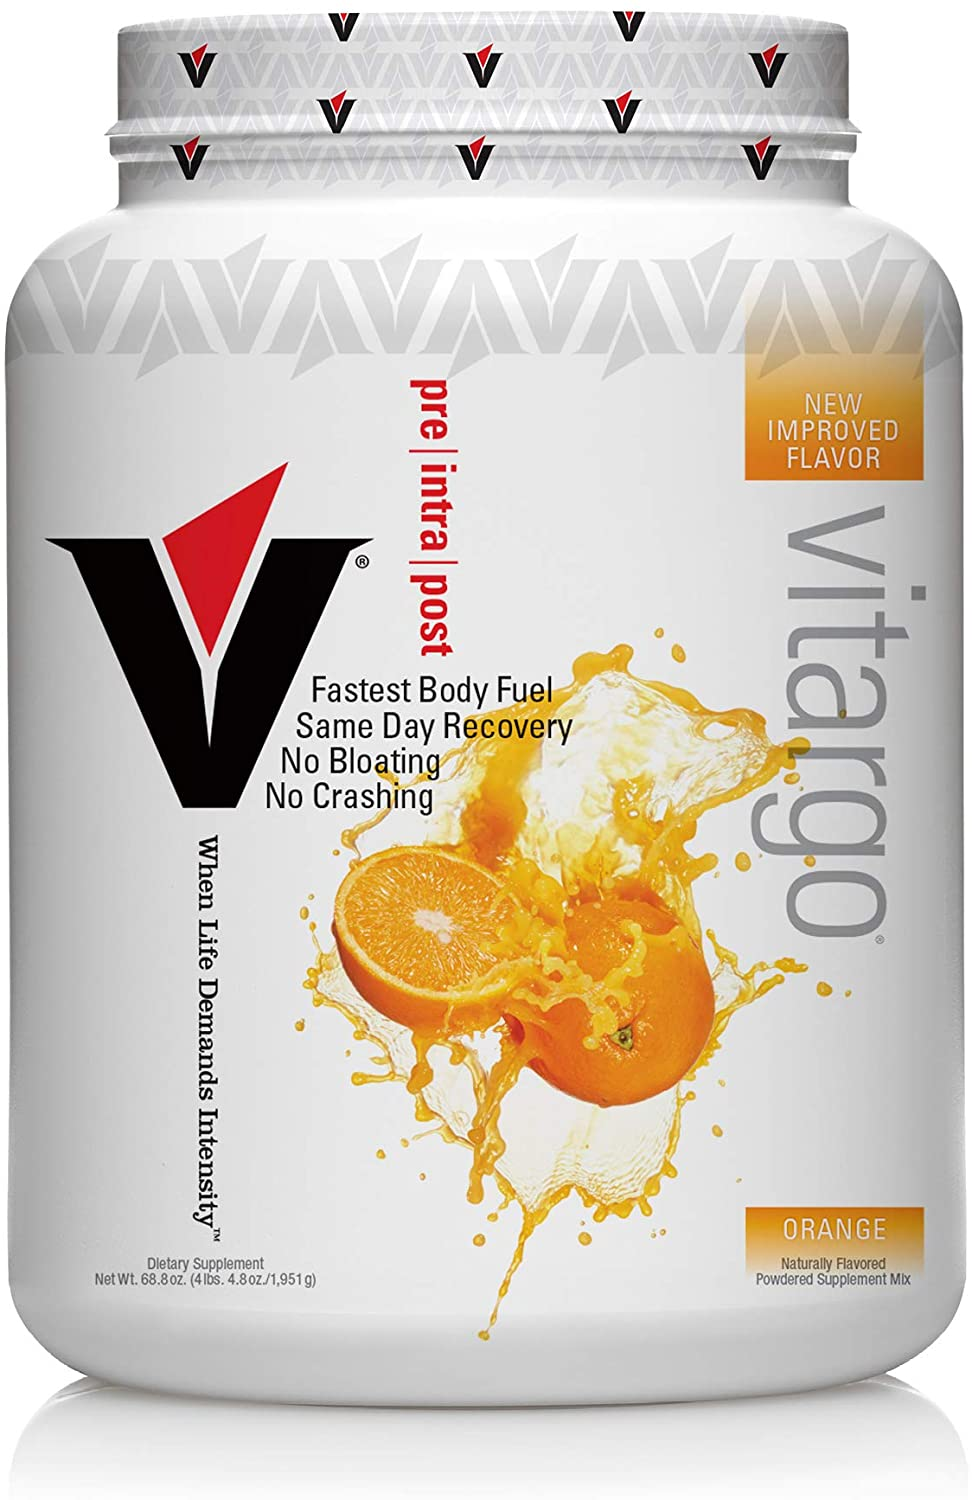 Vitargo Carbohydrate Powder | Feed Muscle Glycogen 2X Faster | 4.4 LB Orange Pre Workout & Post Workout | Carb Supplement for Recovery, Endurance, Gain Muscle Mass